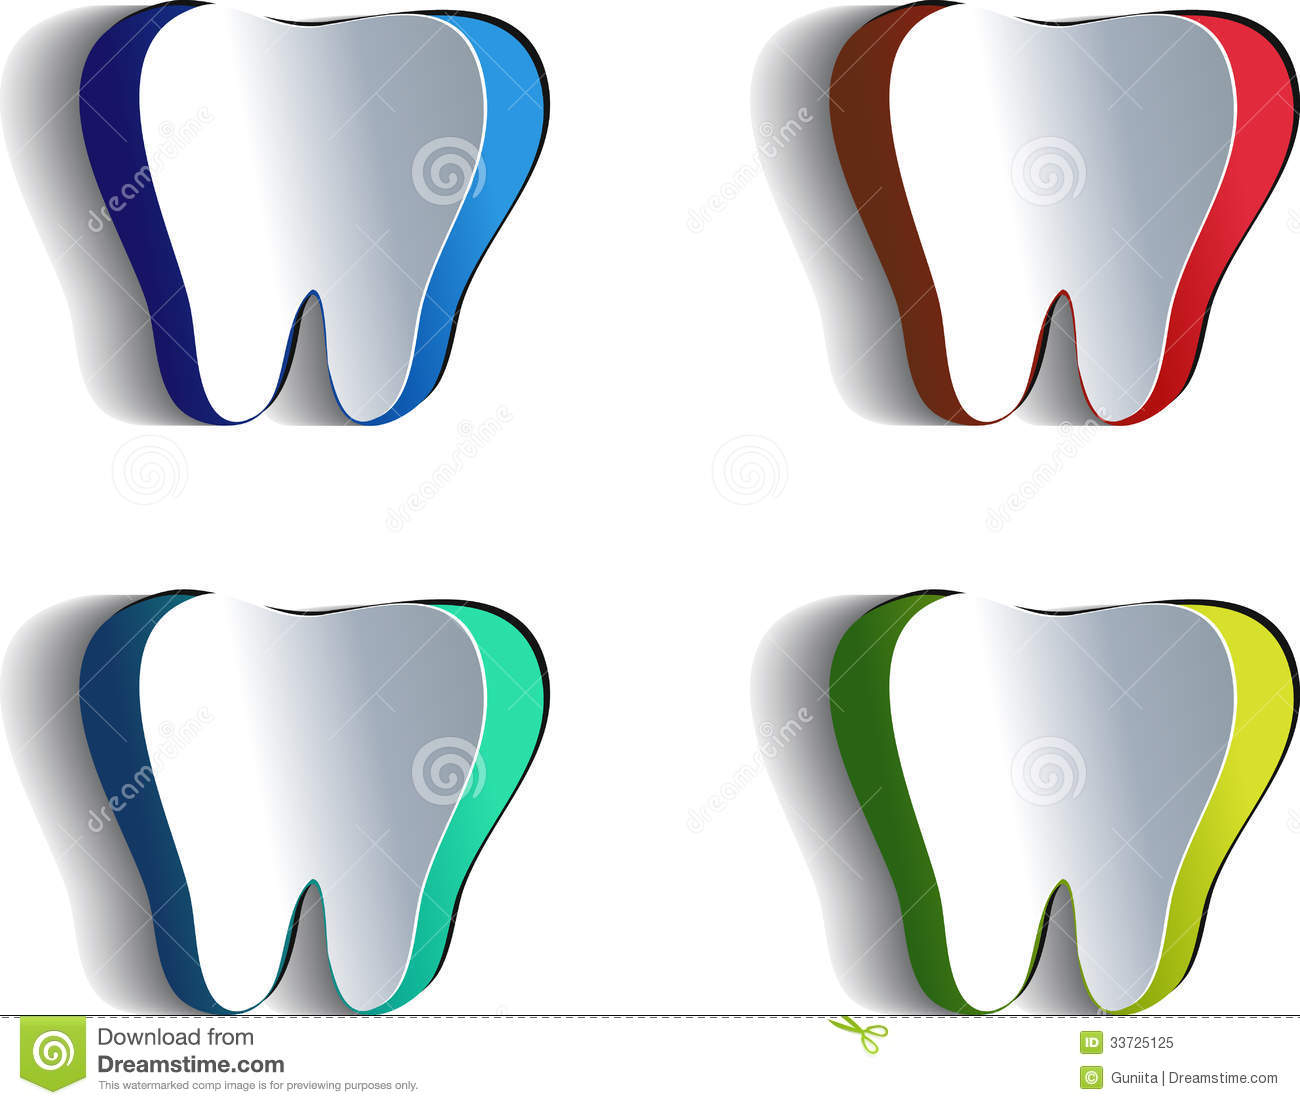 blue paper research technology tooth